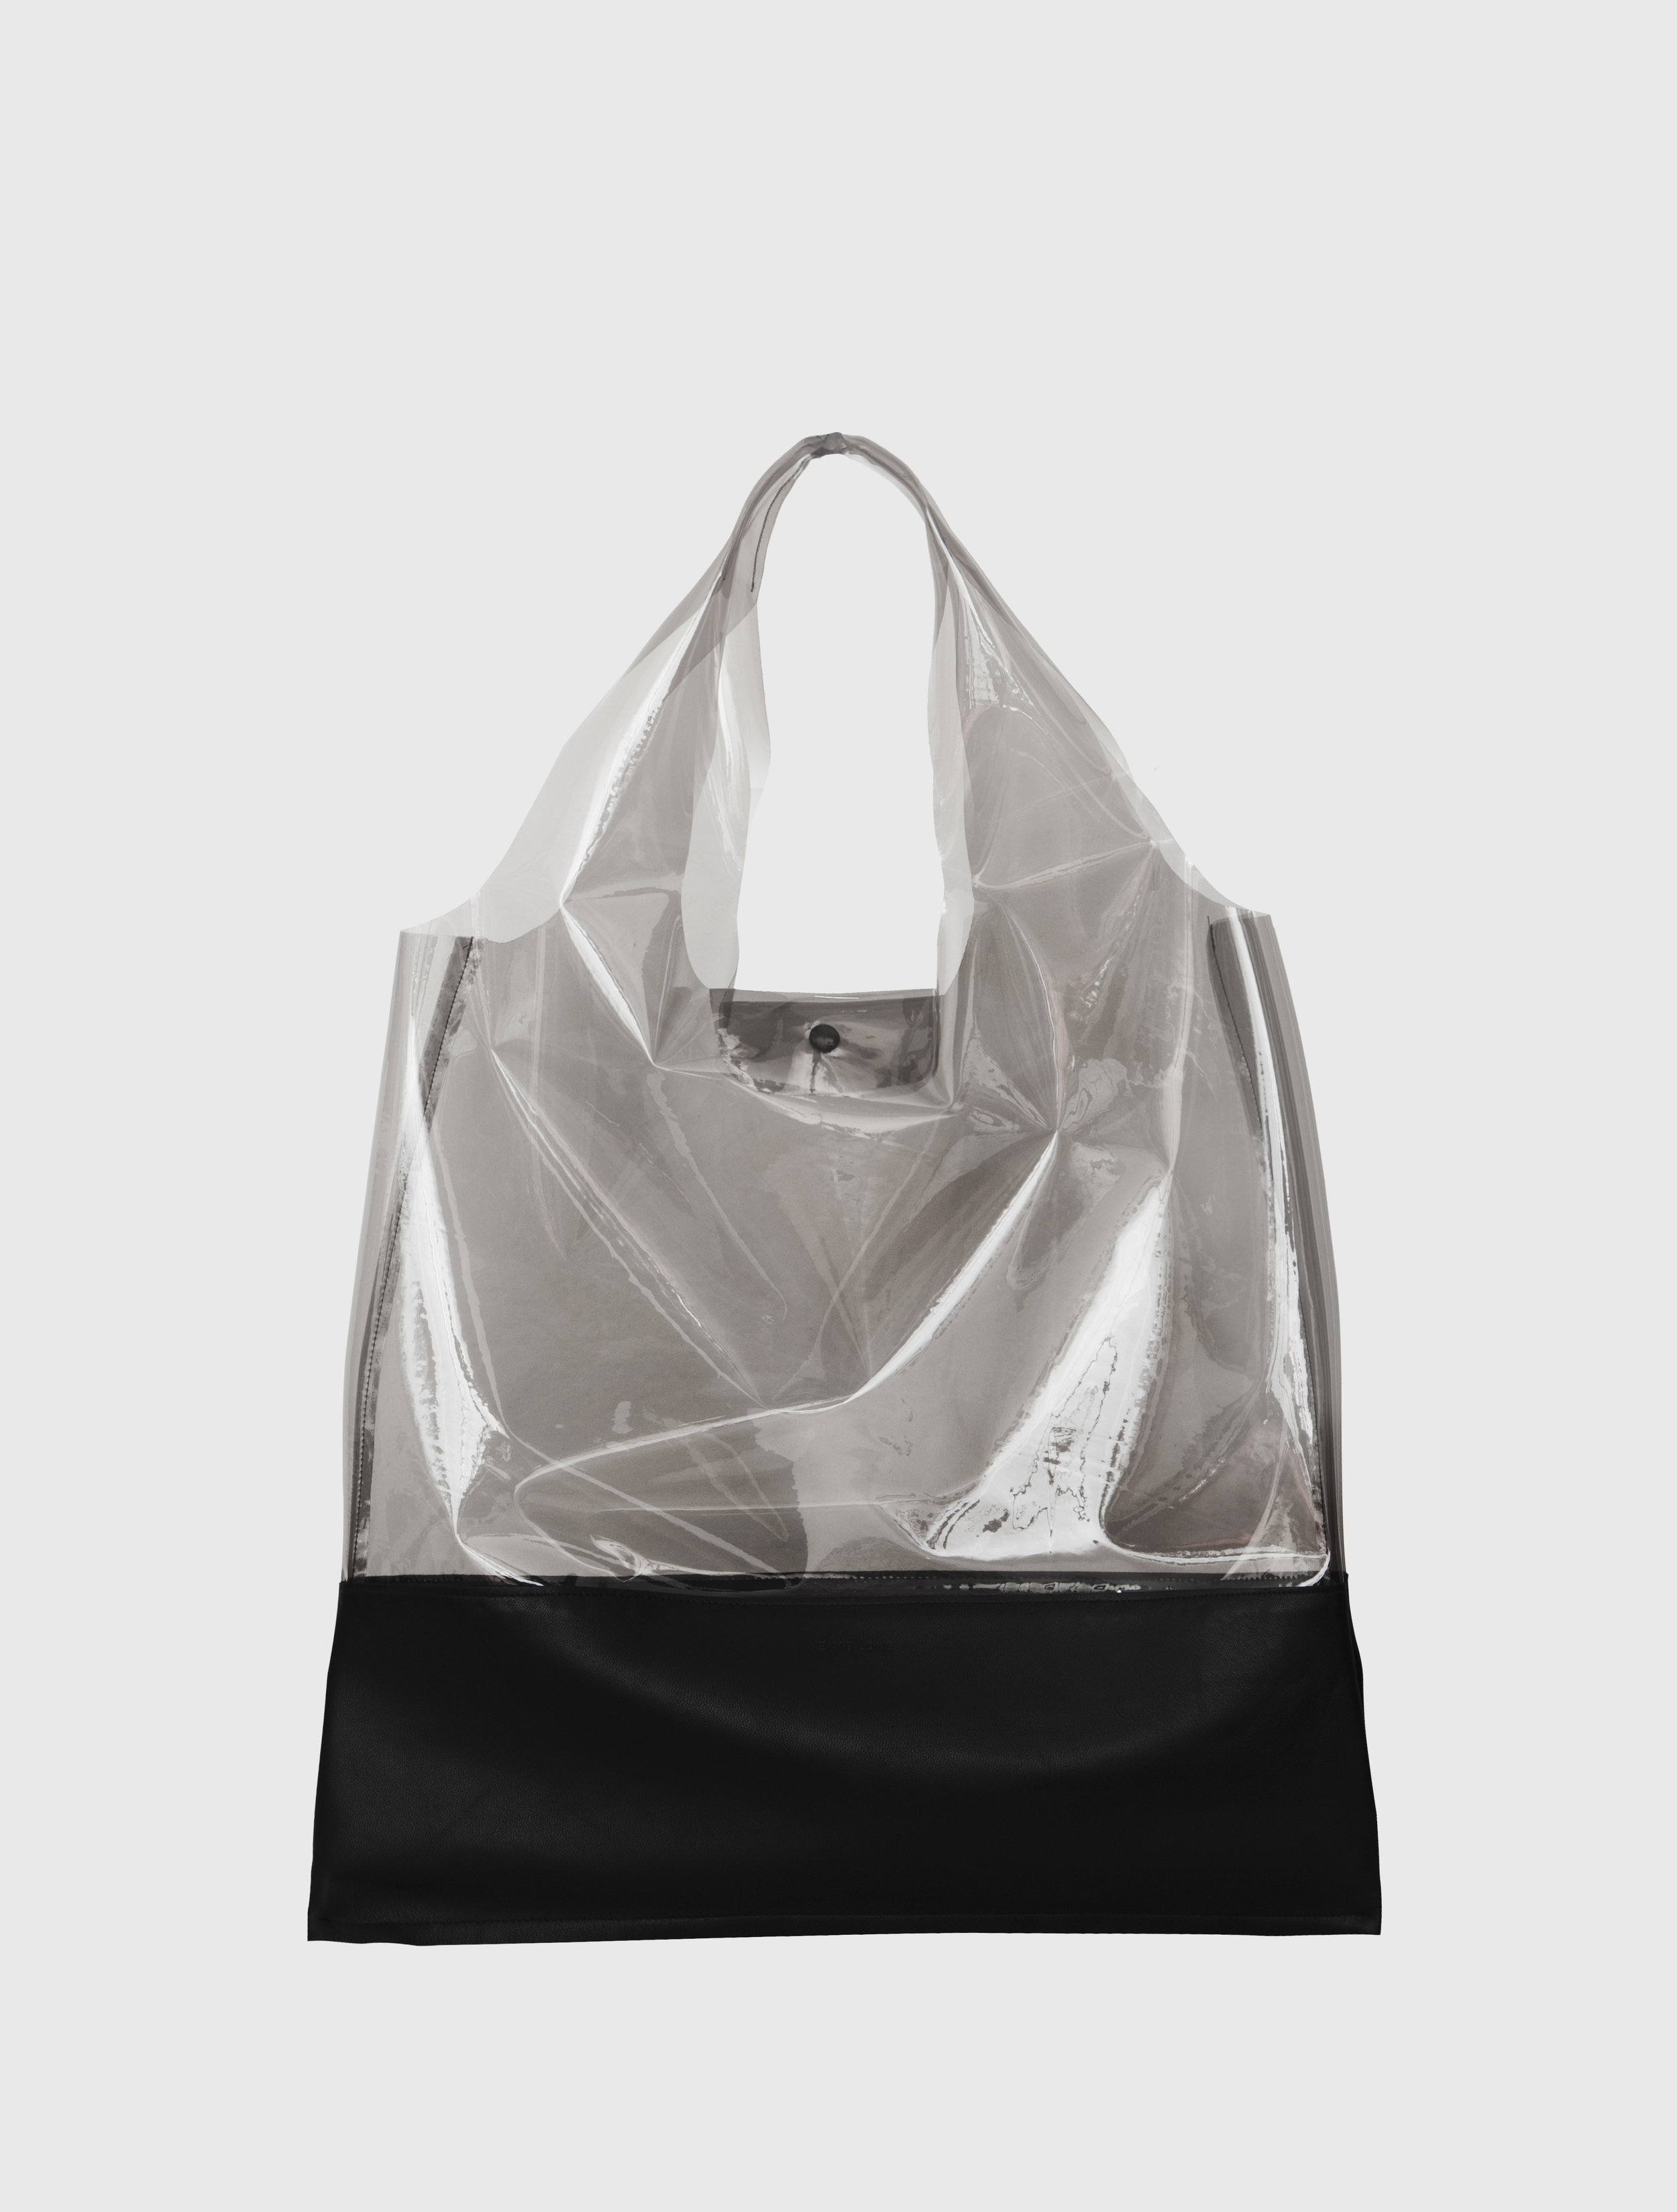 2015-16 SHOPPER - ACETATE BLACK FRONT.jpg